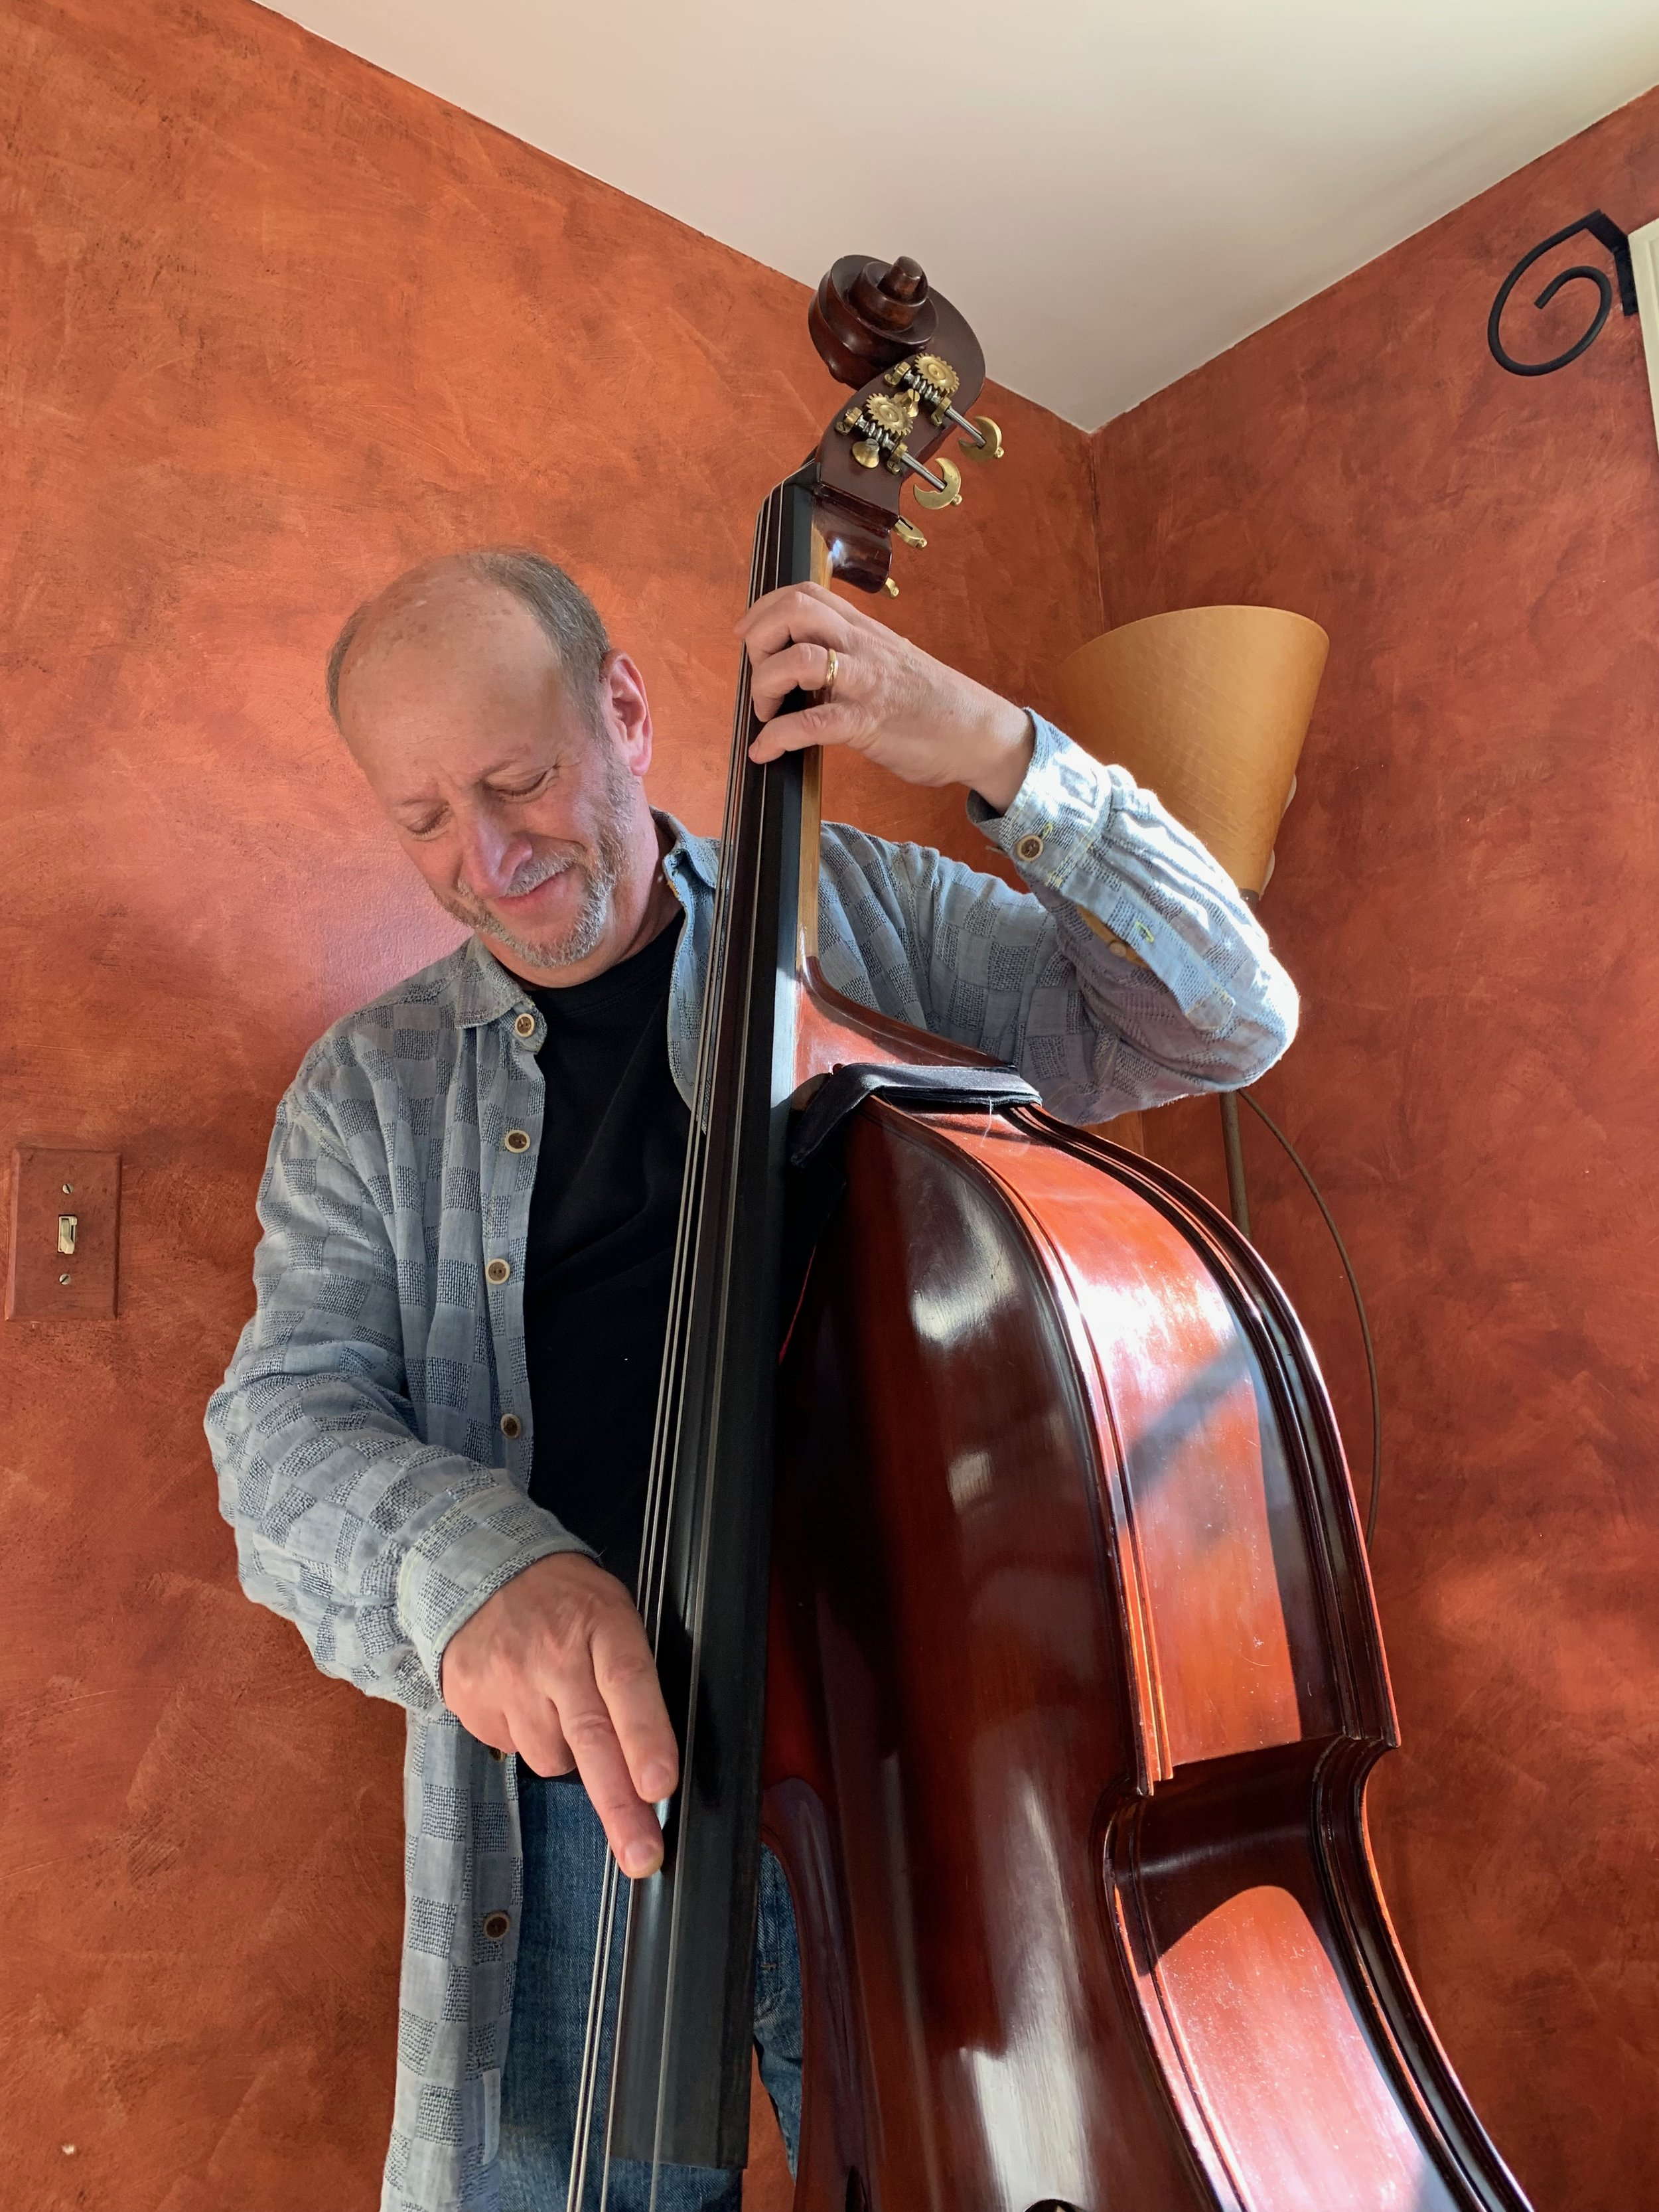 Bruce Gertz with his Kolstein, Lafaro, Busetto Travel Bass  https://kolstein.com/product/kolstein-busetto-removable-neck-model-travel-bass-wtravel-trunk/